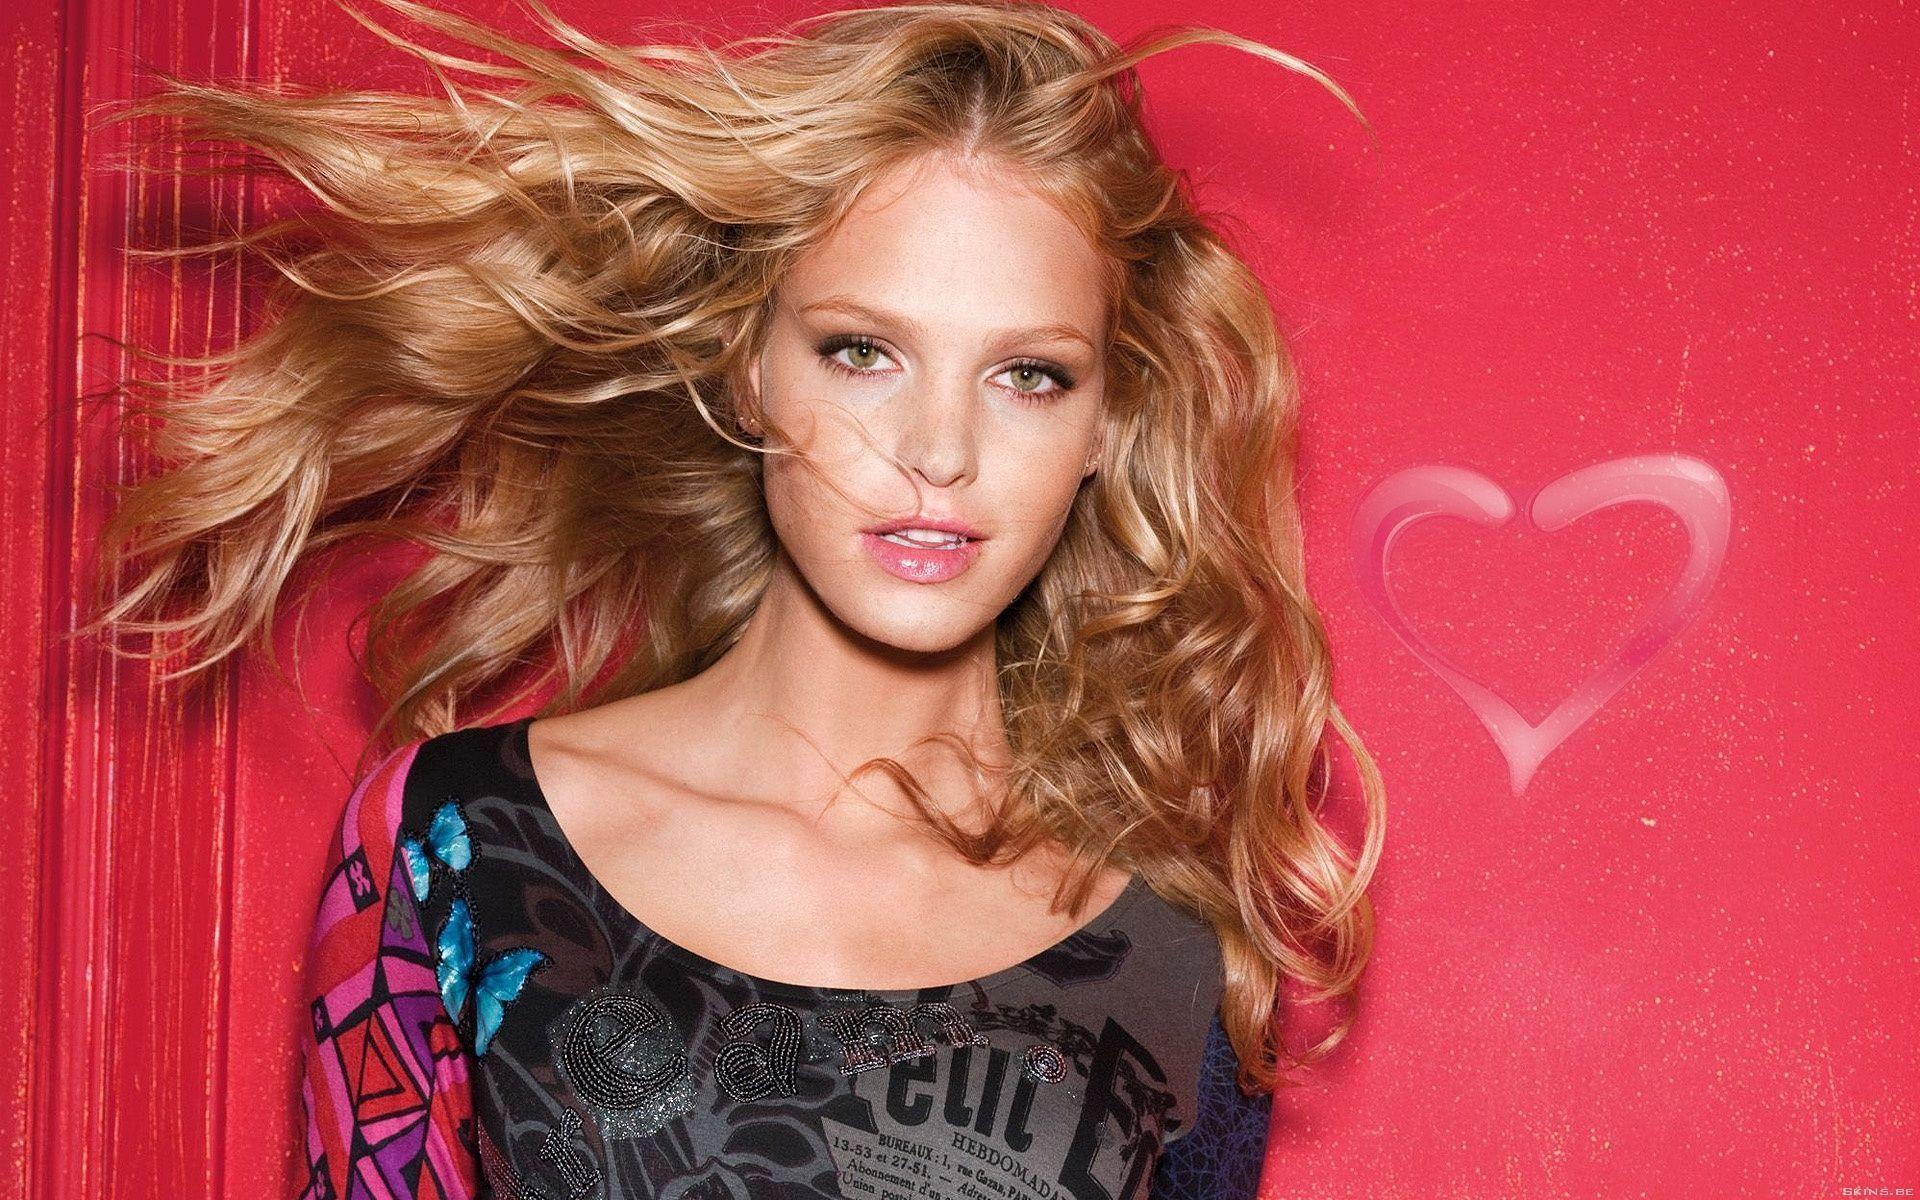 Girl Superheros Wallpaper Erin Heatherton Wallpapers Wallpaper Cave